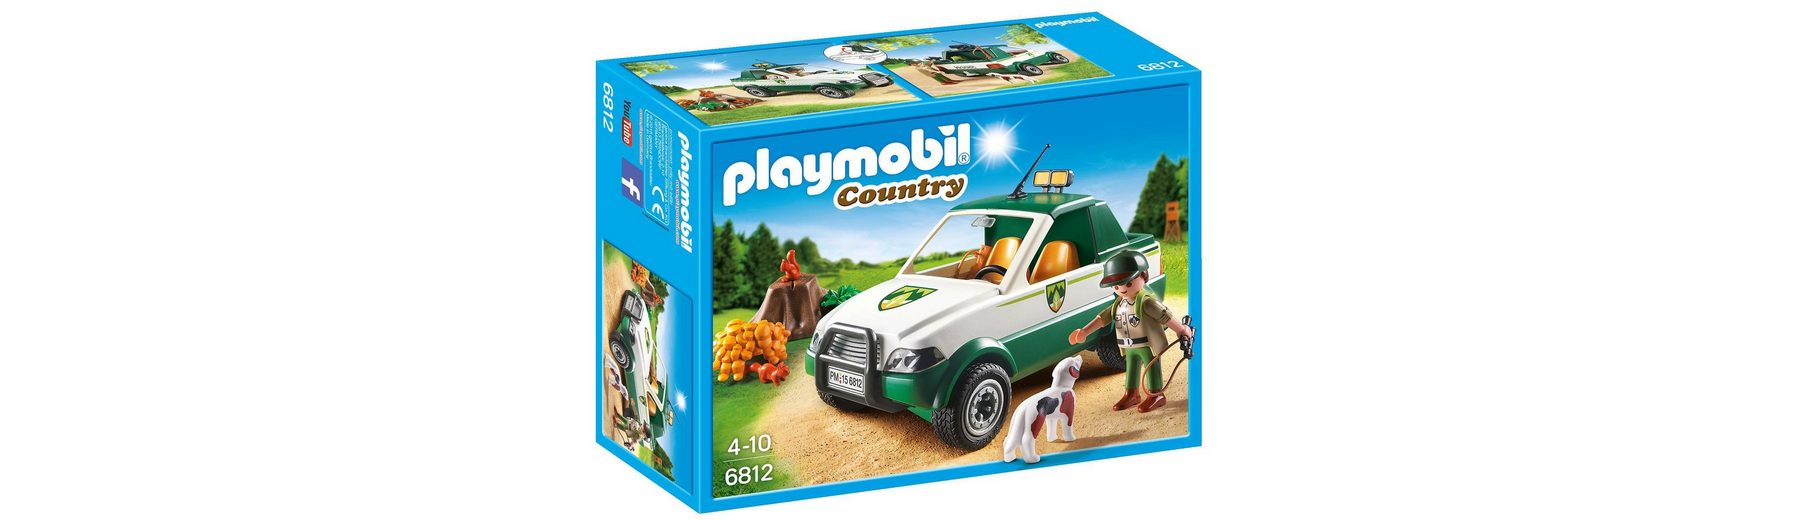 Playmobil® Förster-Pickup (6812), »Country«